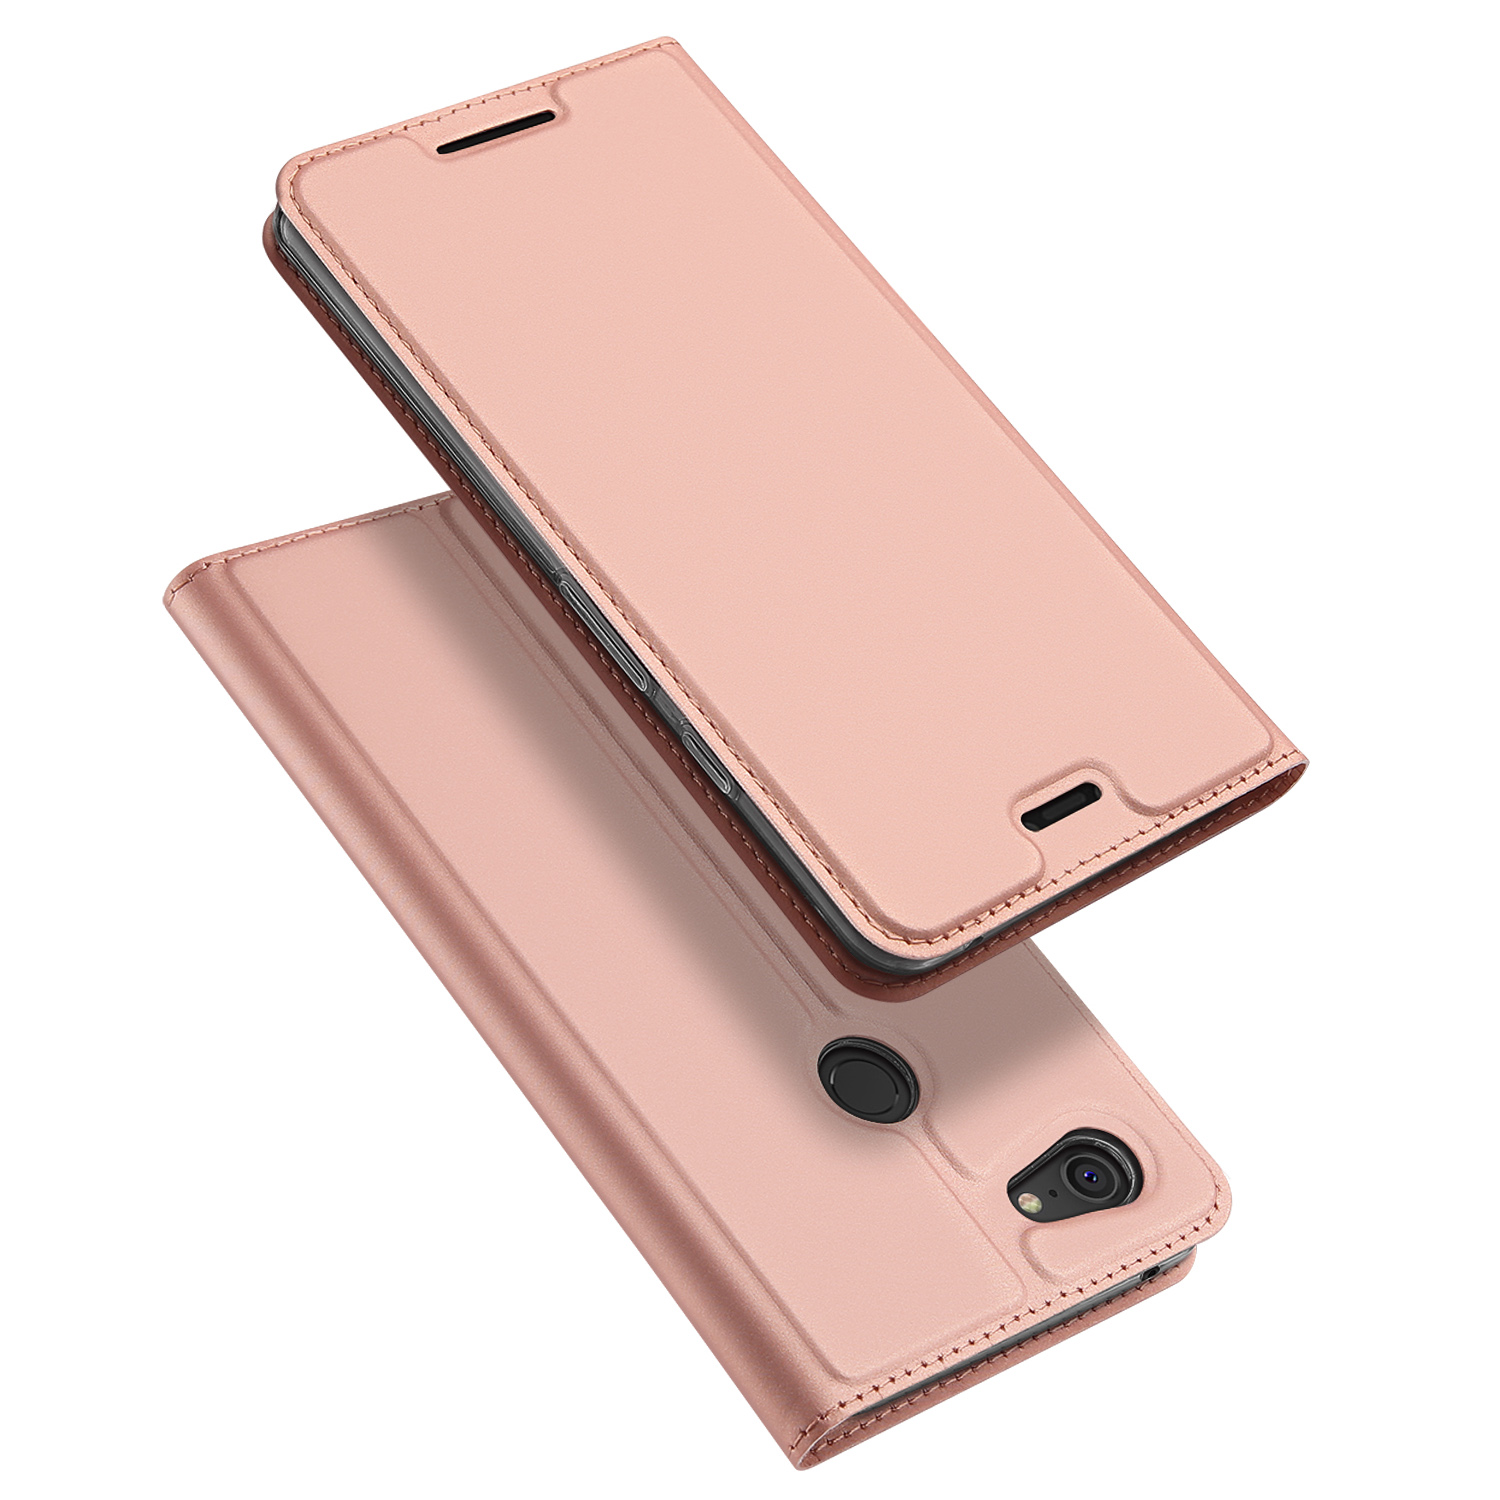 Flip Case For Google Pixel 3 XL PU Leather TPU Soft Bumper Protective Card Slot Holder Wallet Stand Cover Mobile Phone Bag